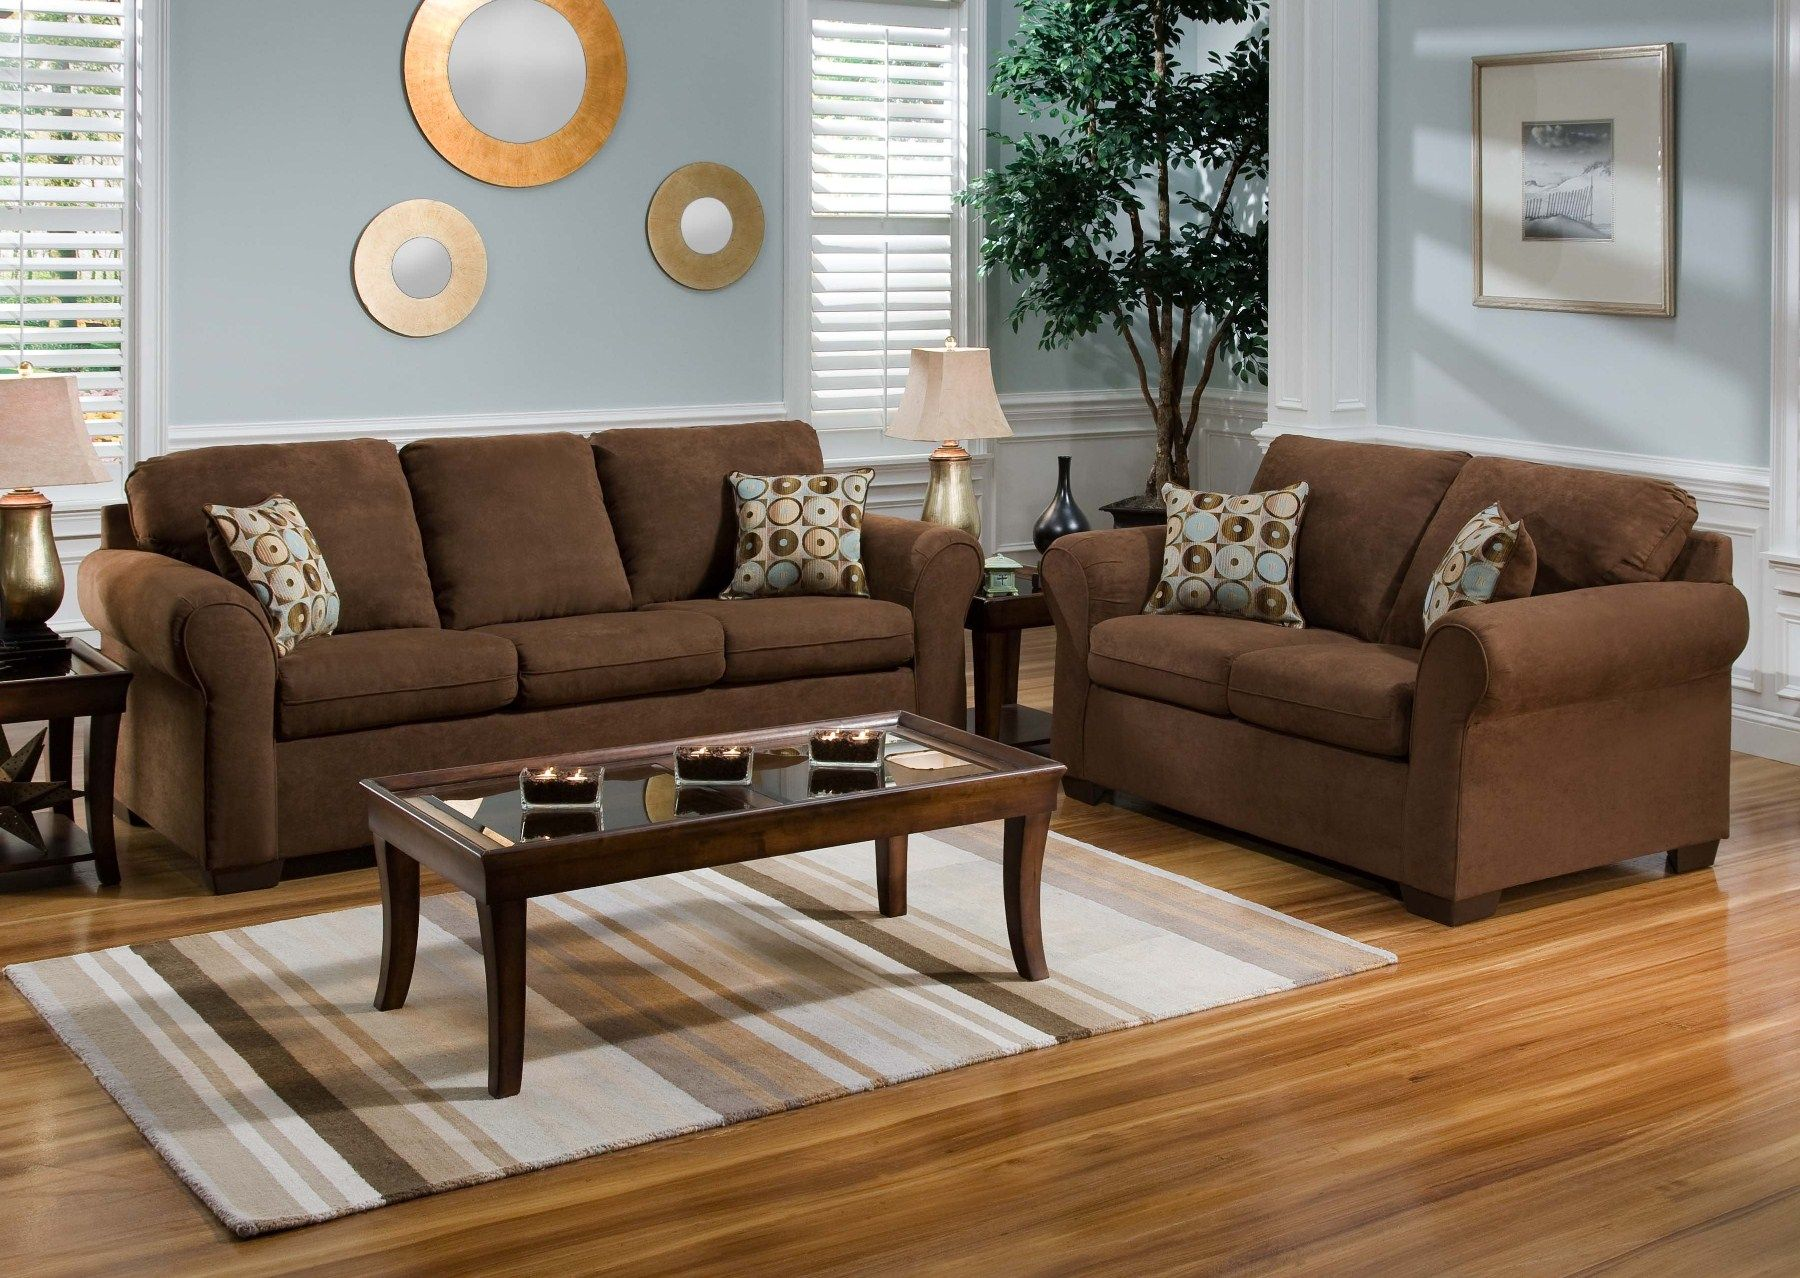 Living Room Colour Schemes Brown Sofa Warm Living Room Color Schemes With Chocolate Brow Brown Couch Living Room Brown Living Room Decor Red Couch Living Room